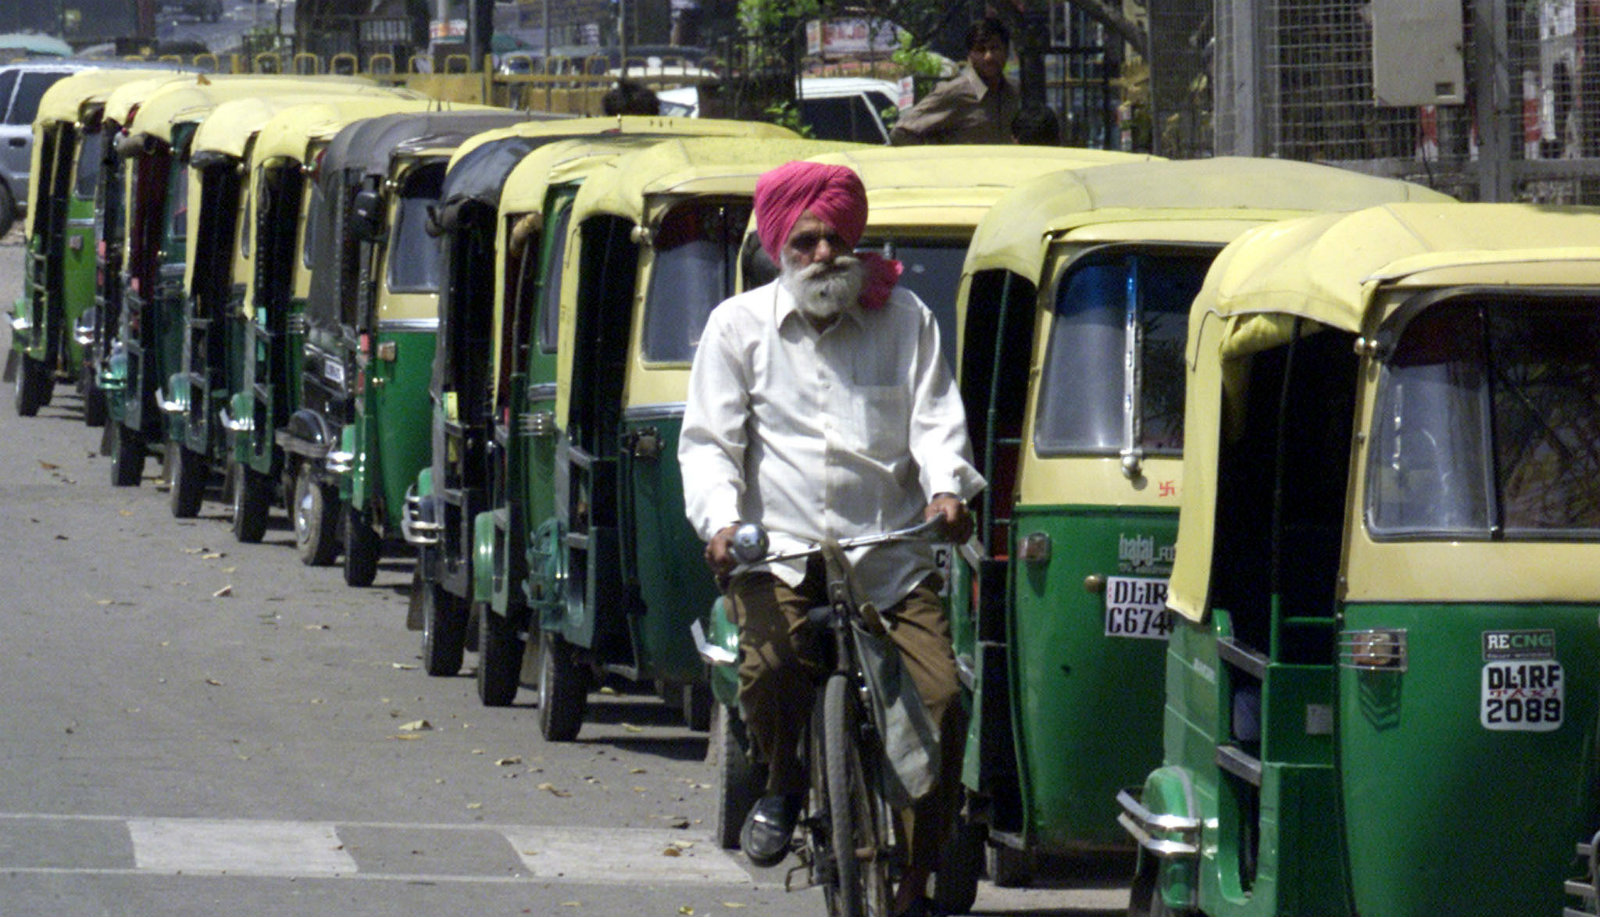 A cyclist passes by a queue of auto-rickshaws waiting to fill their tanks at station selling compressed natural gas in New Delhi April 2, 2001. Commuters in the Indian capital were stranded for a second day running on Monday as thousands of buses and taxis went off the roads under a court order to switch to the cleaner fuel. Some 15,000 private and state-run buses and thousands of taxis and three-wheelers had been ordered by the Supreme Court to change to compressed natural gas from diesel by April 1 in a drive to clean the capital's dirty air.